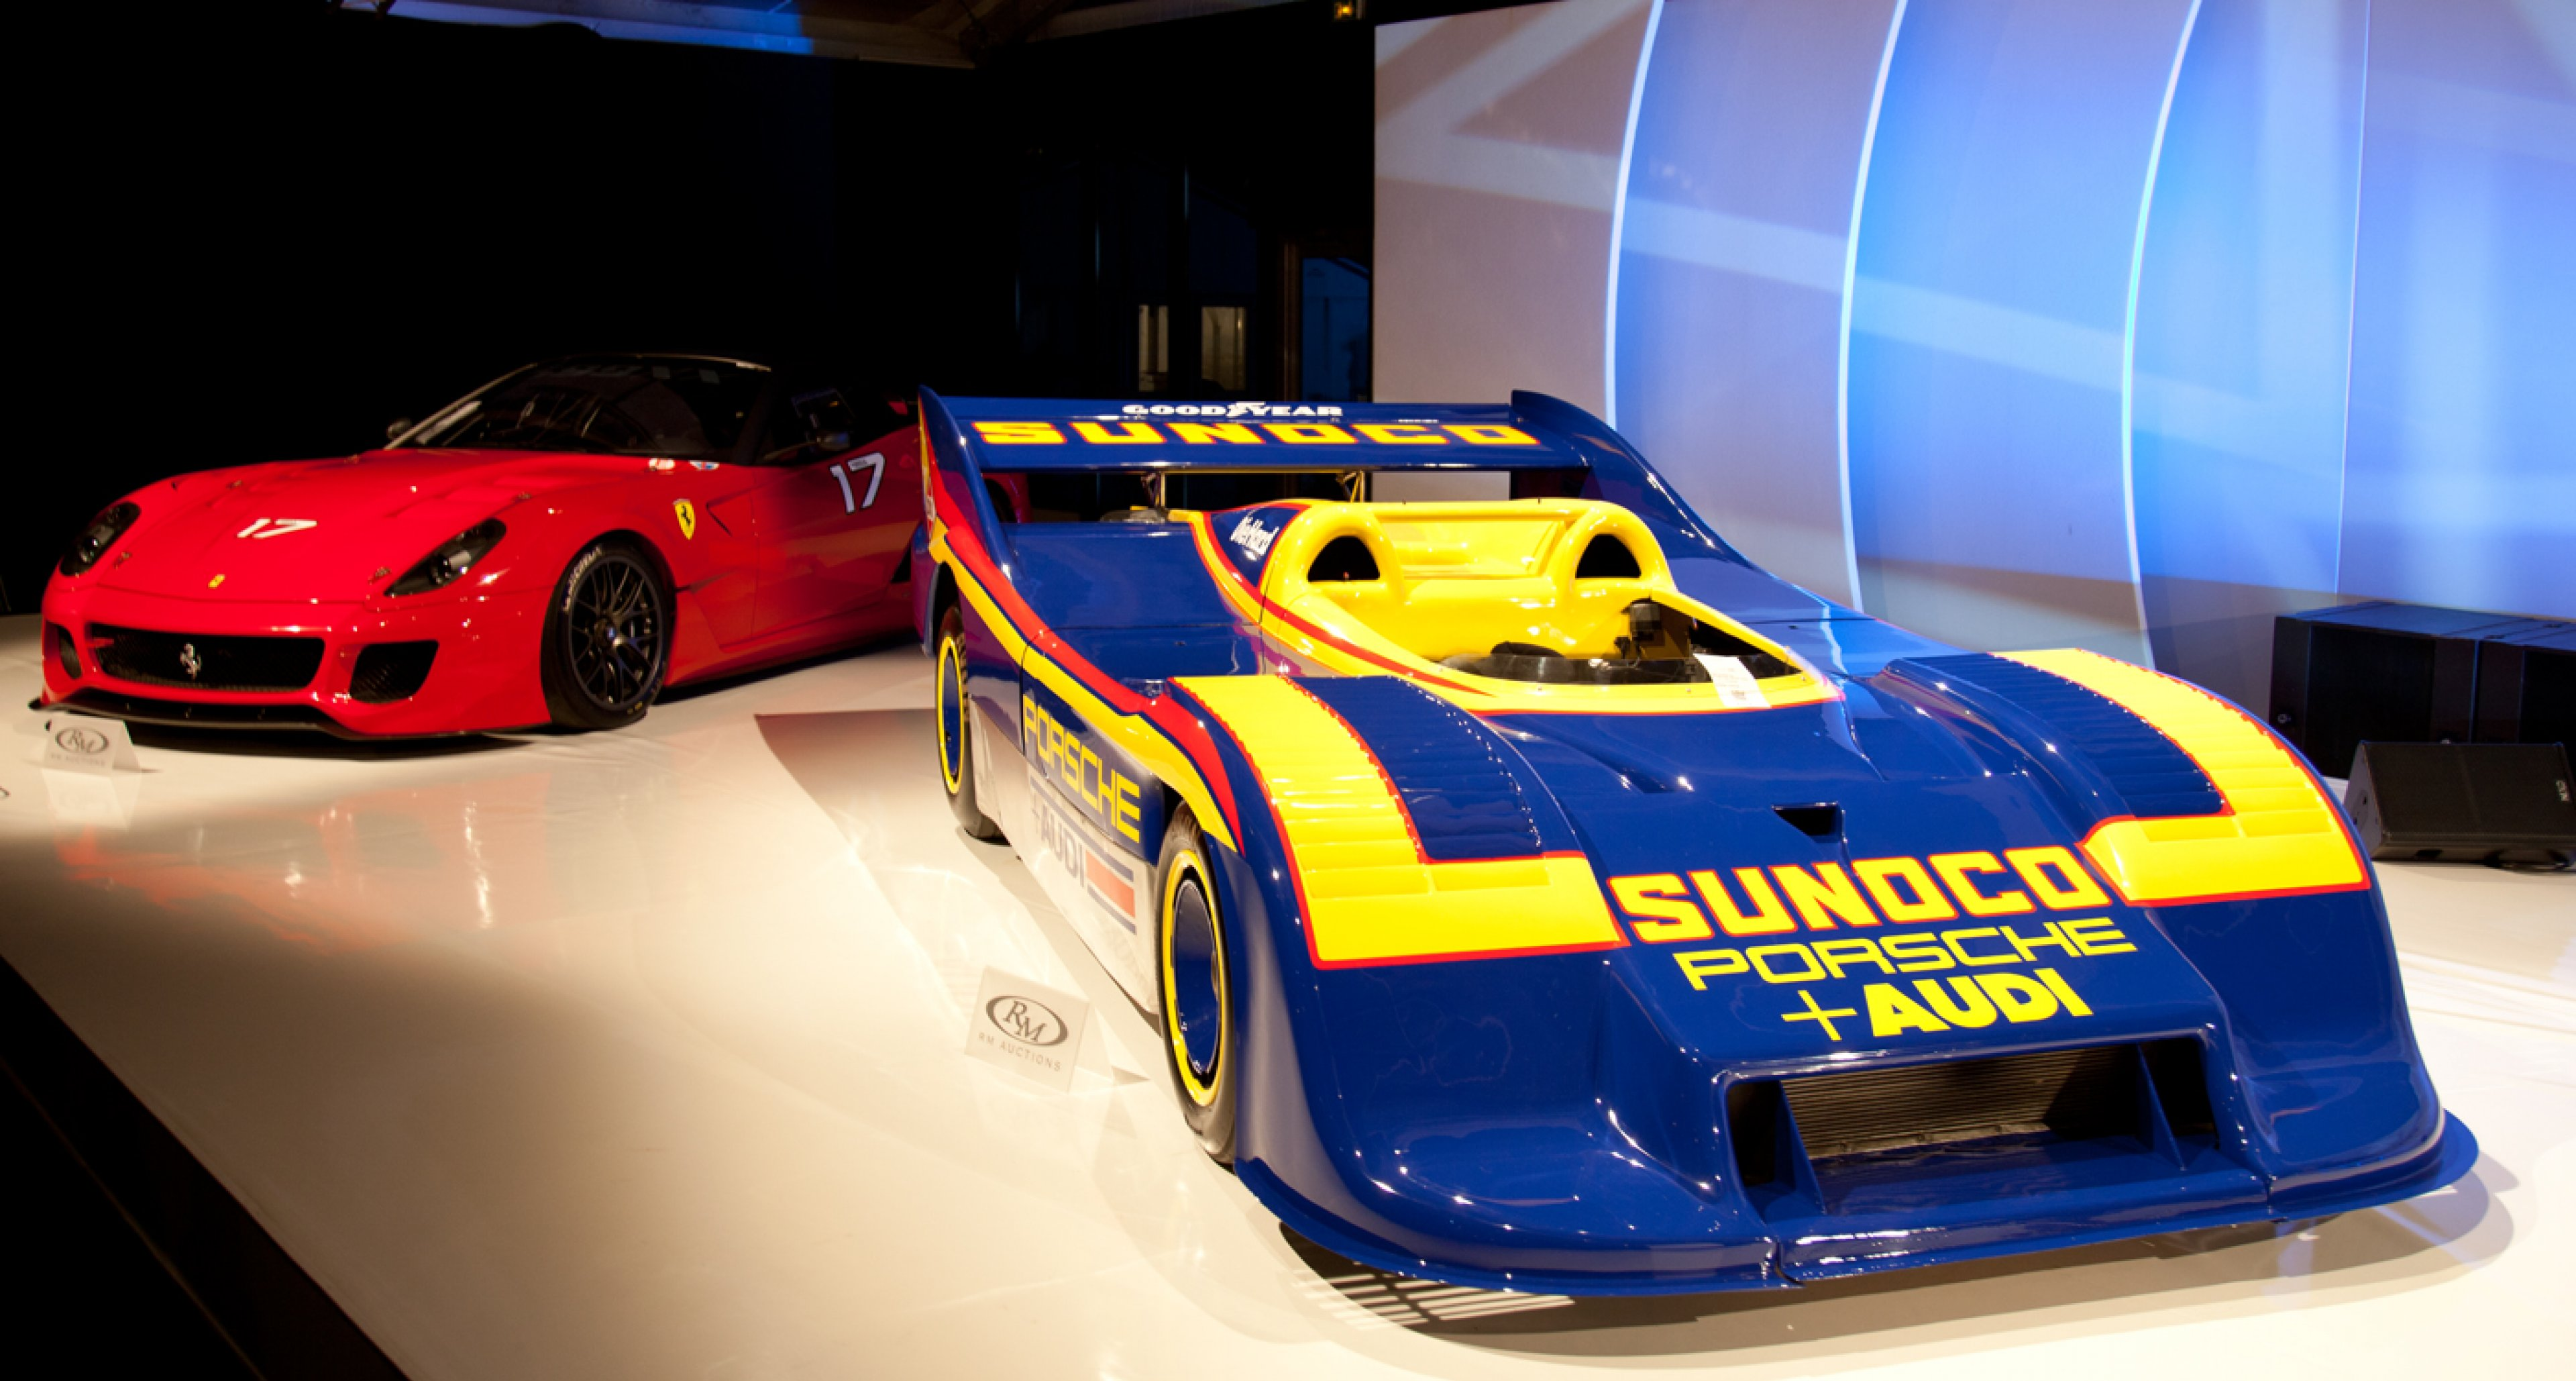 2010 Ferrari 599XX and 1973 Porsche 917/30 Can-Am Spyder at RM Auctions' 2014 Retromobile sale